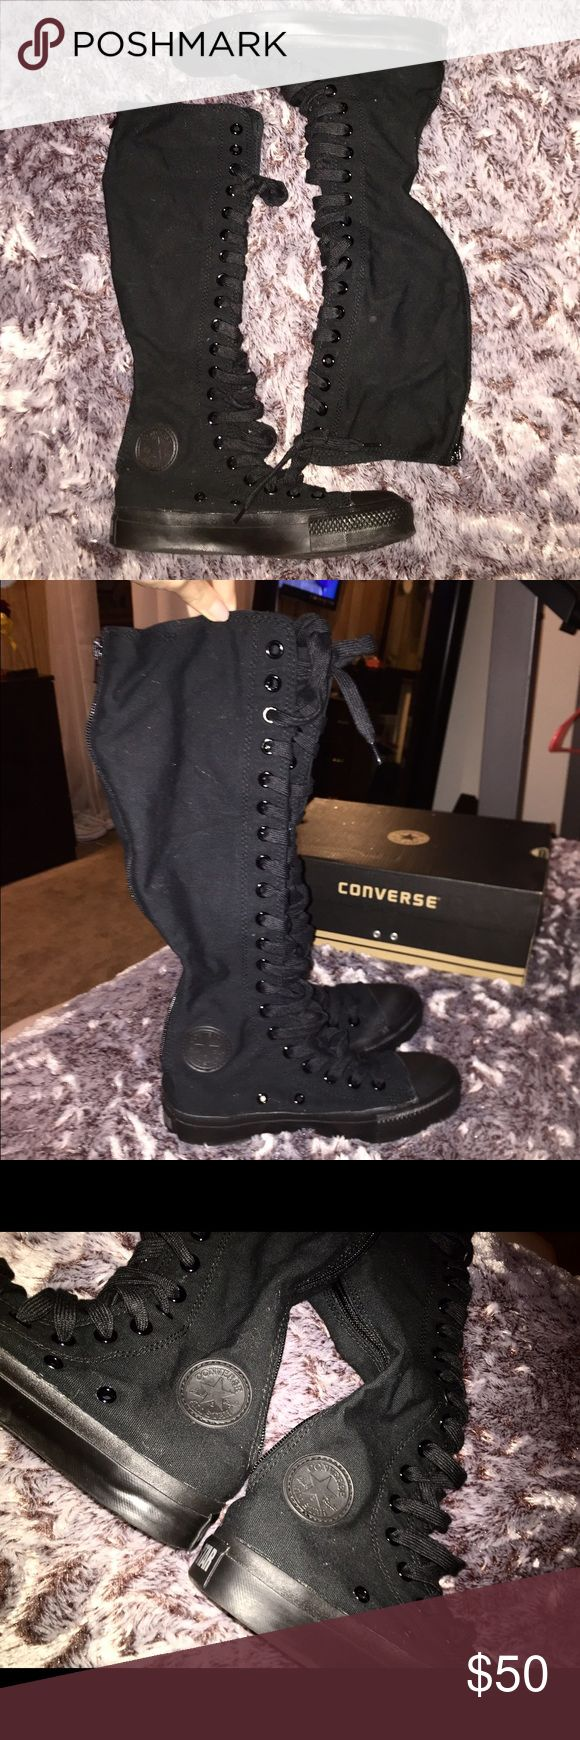 NEW Knee Hi Chuck Taylor Converse  Knee High ALL BLACK authentic converse  BRAND NEW WITH BOX NEVER WORN  Zipper in the back for easy wear  Size 4 men's and Size 6 women's Converse Shoes Lace Up Boots